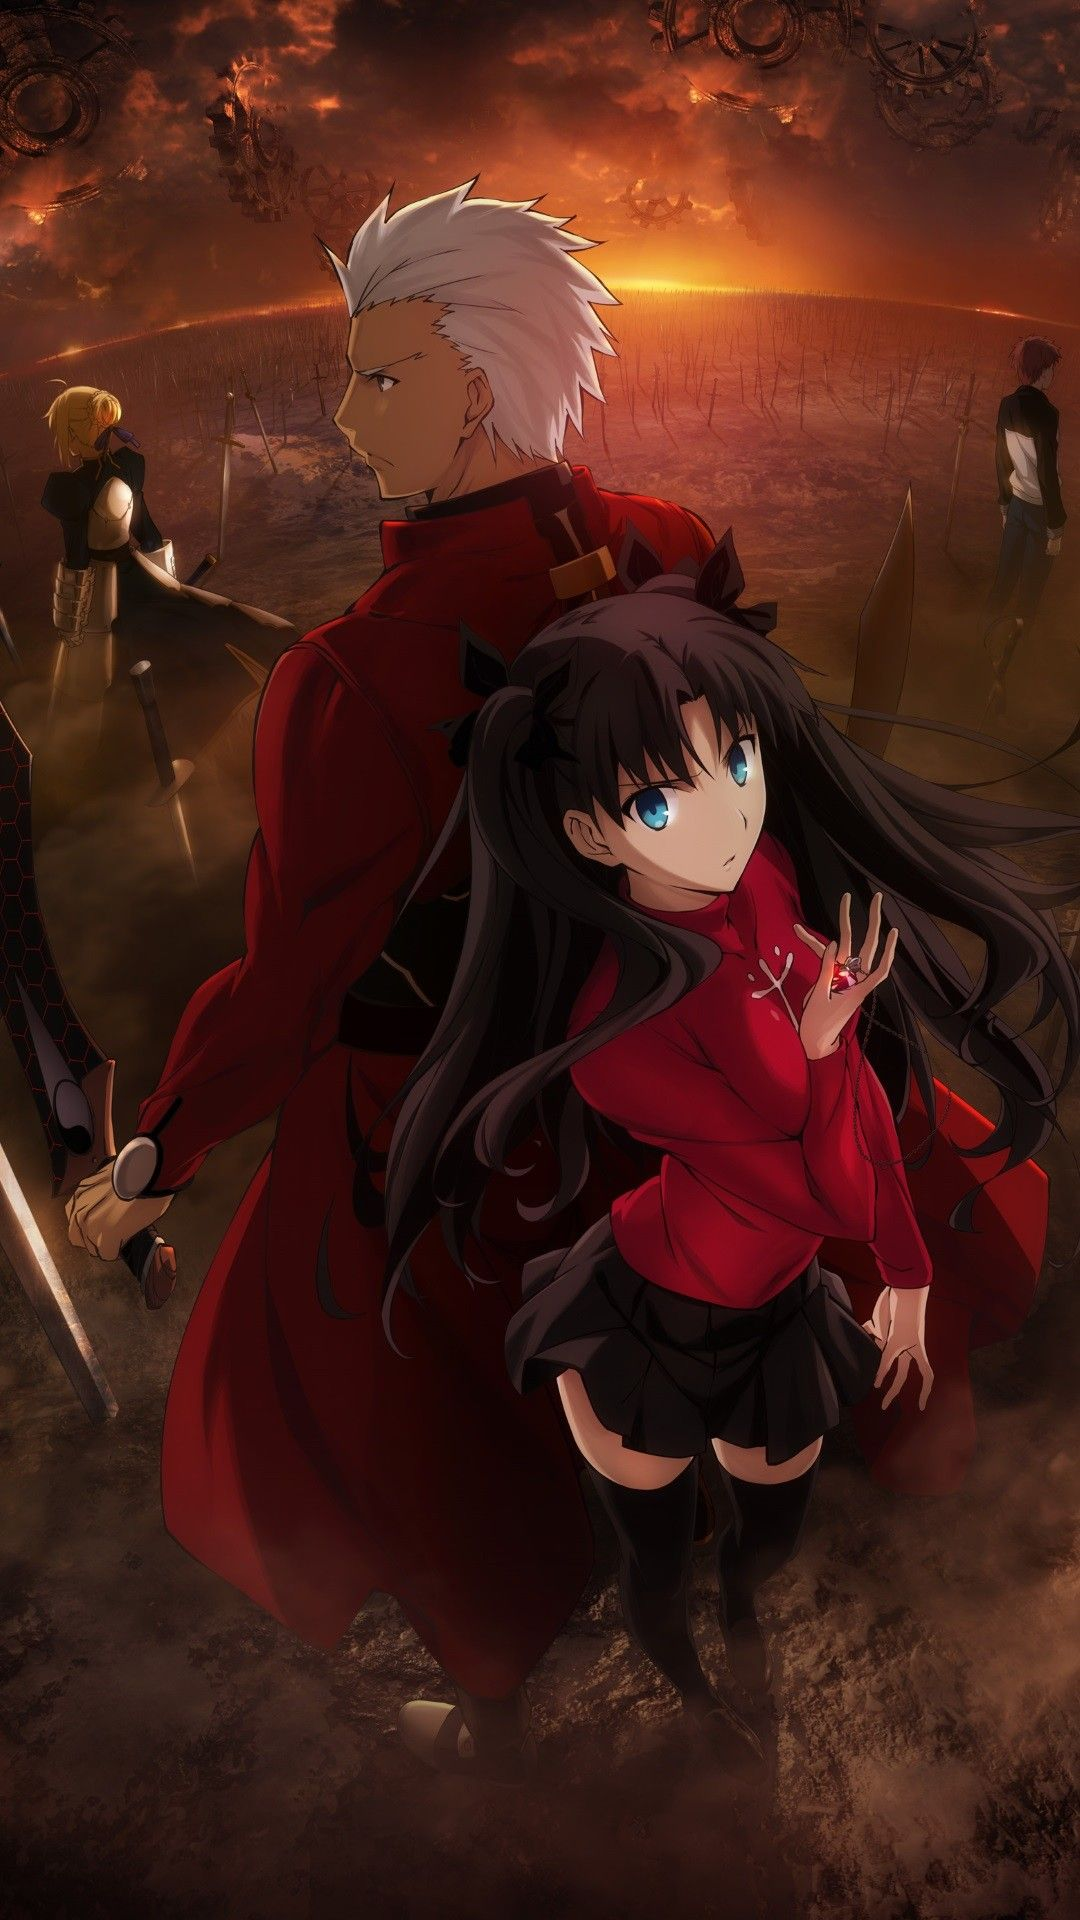 Fate Stay Night Iphone Wallpapers Top Free Fate Stay Night Iphone Backgrounds Wallpaperaccess